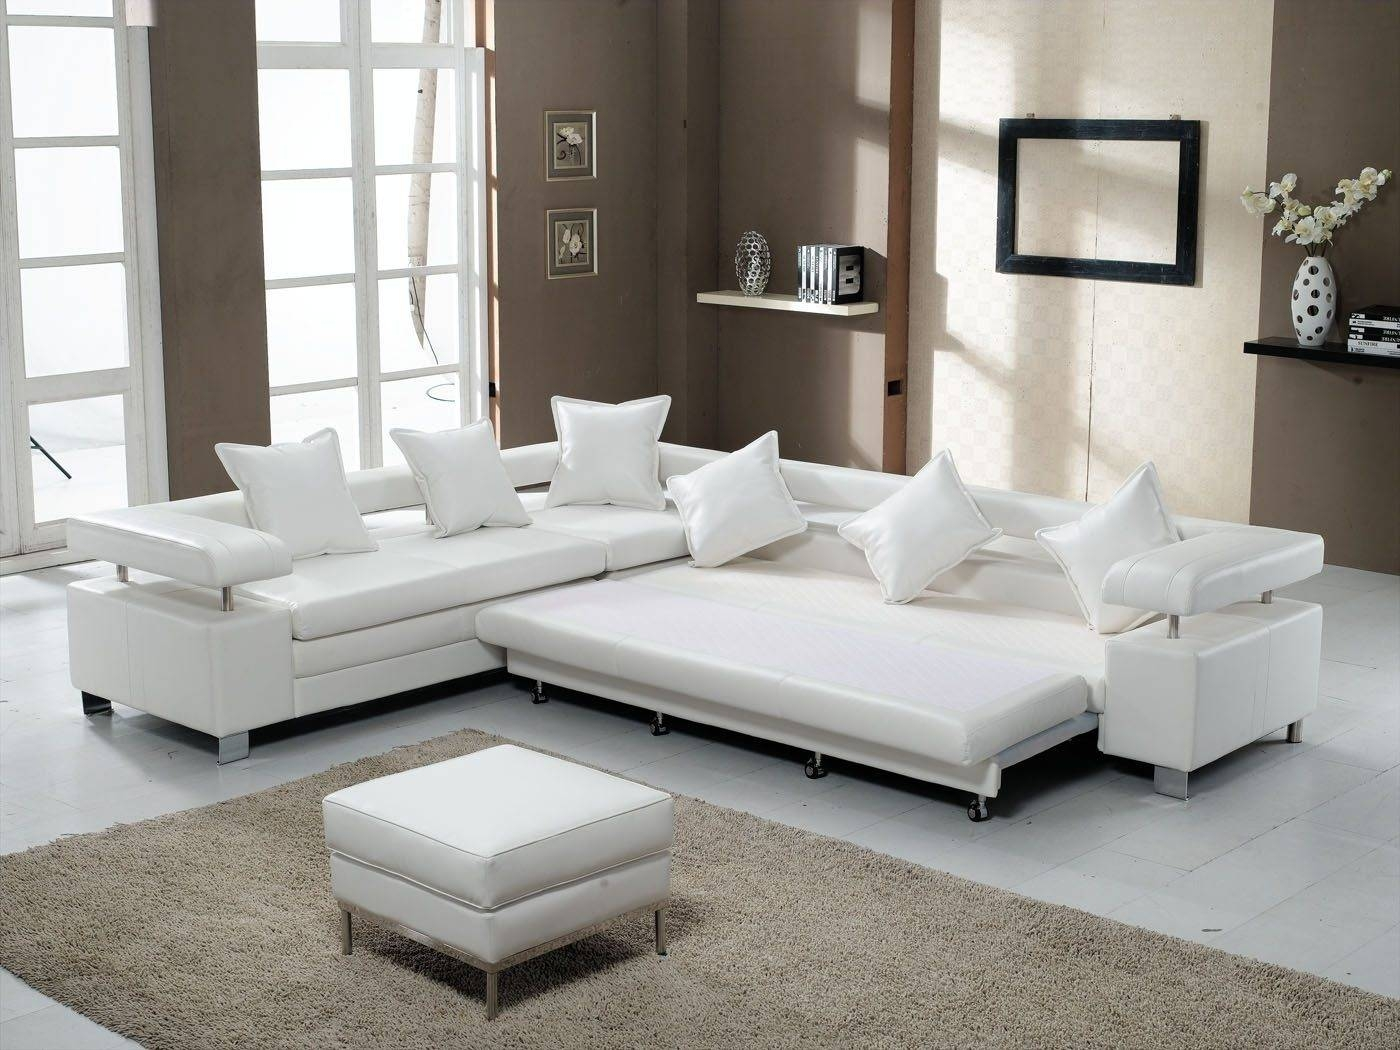 Interior: Best Collection White Sectional Sofa For Excellent with regard to Wide Sectional Sofa (Image 17 of 25)